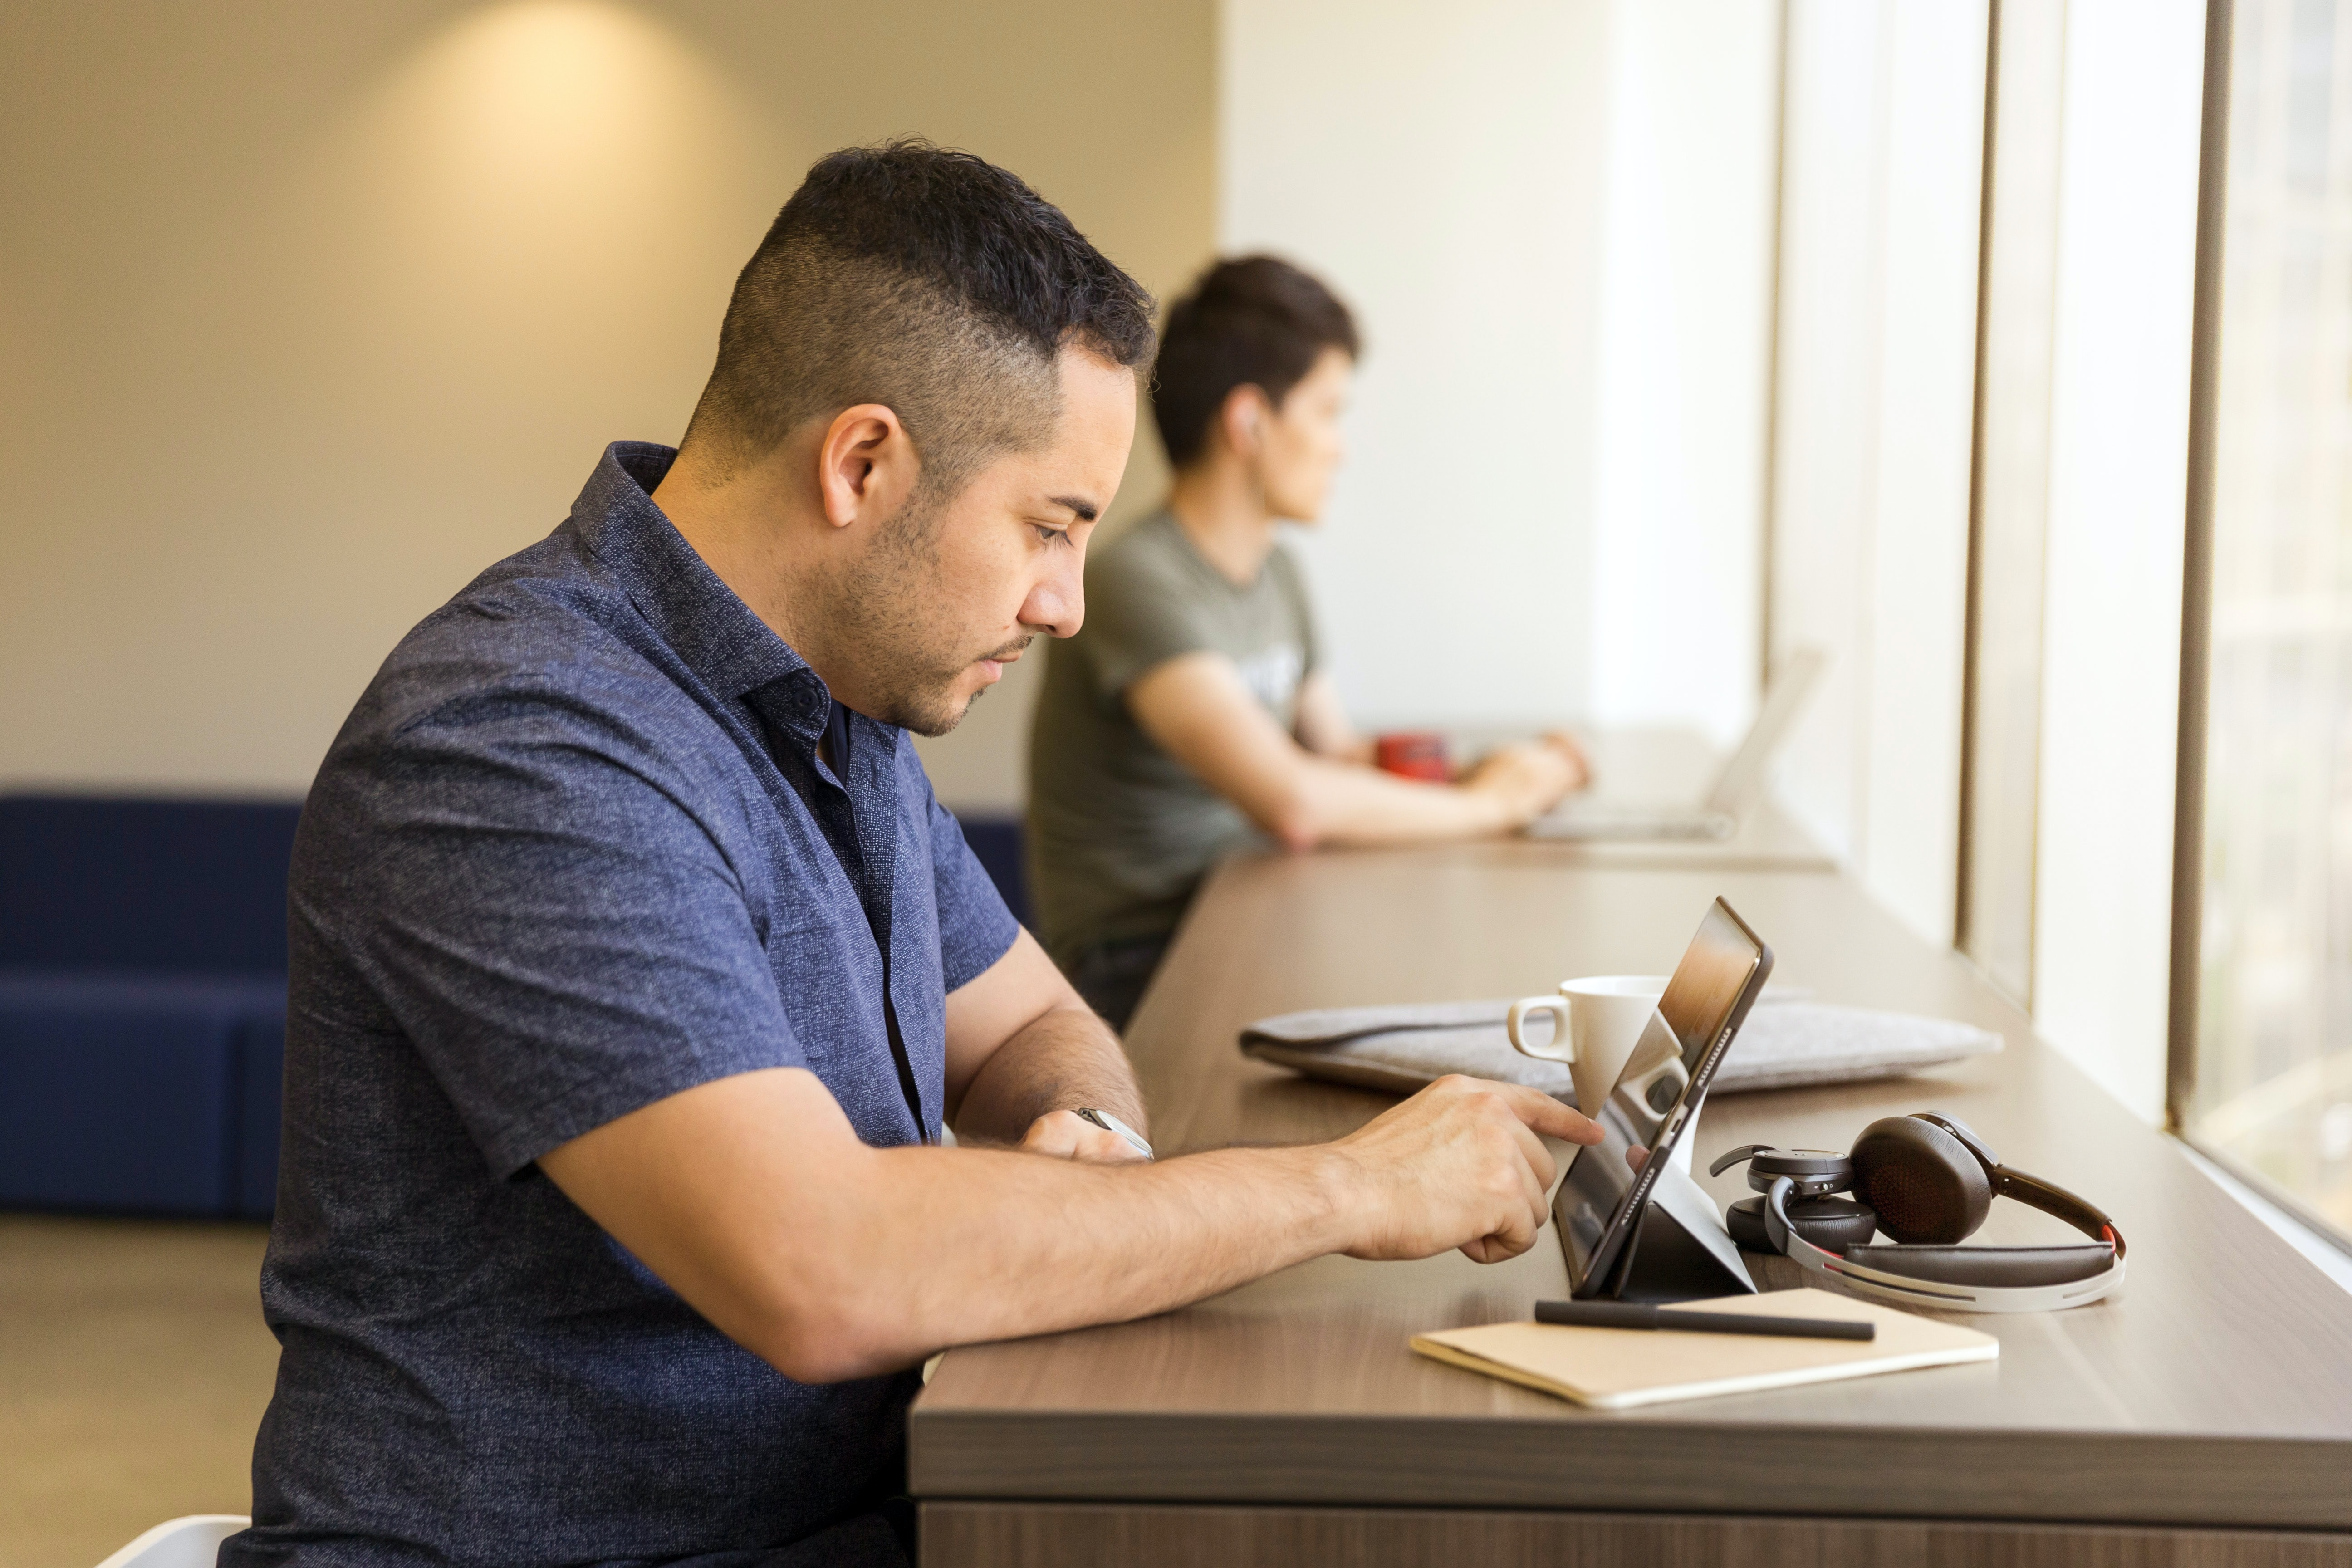 man touching tablet computer on desk